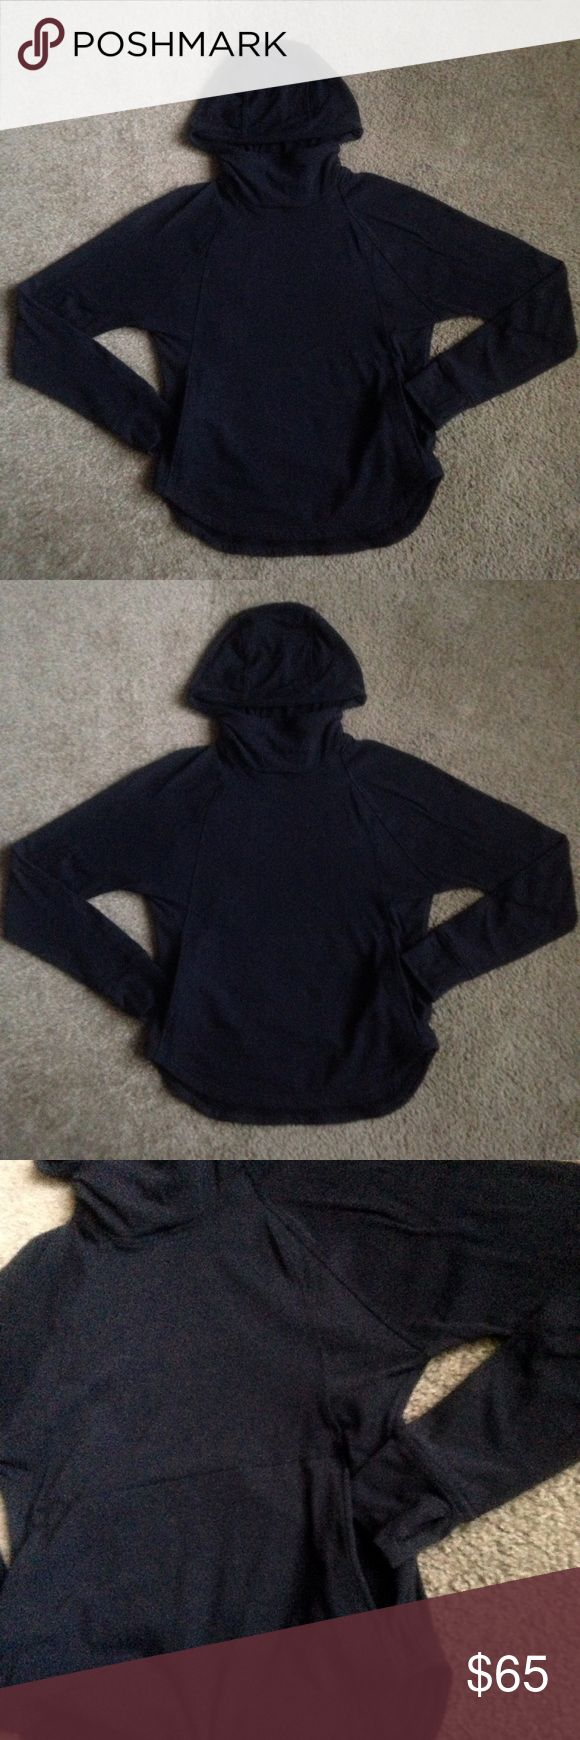 lululemon hoodie pullover size 4 lululemon hoodie pullover size 4 in good condition please look at pictures lululemon athletica Sweaters